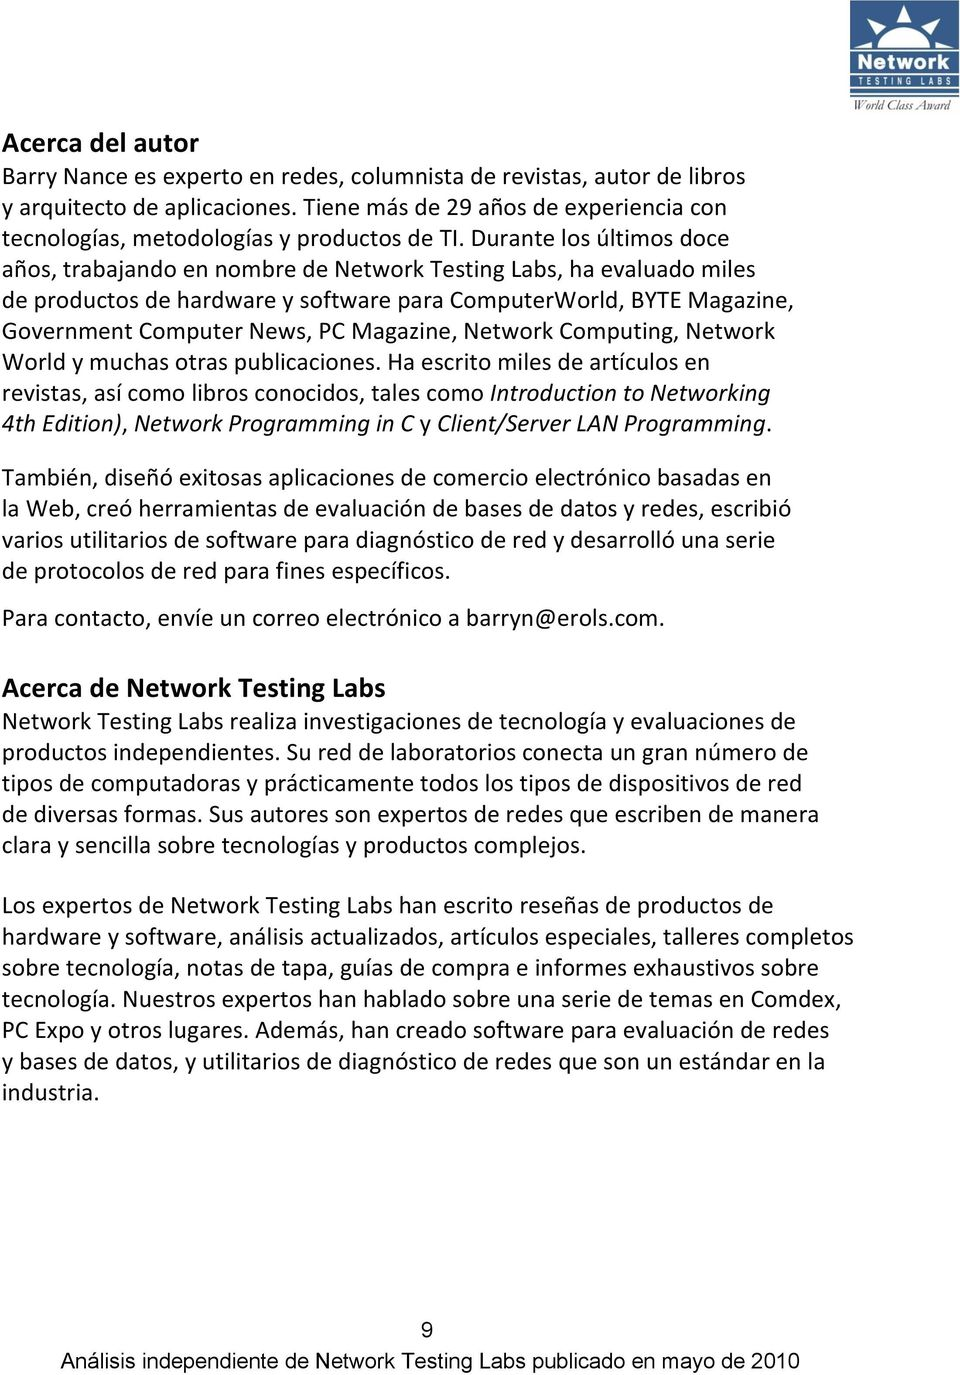 Durante los últimos doce años, trabajando en nombre de Network Testing Labs, ha evaluado miles de productos de hardware y software para ComputerWorld, BYTE Magazine, Government Computer News, PC